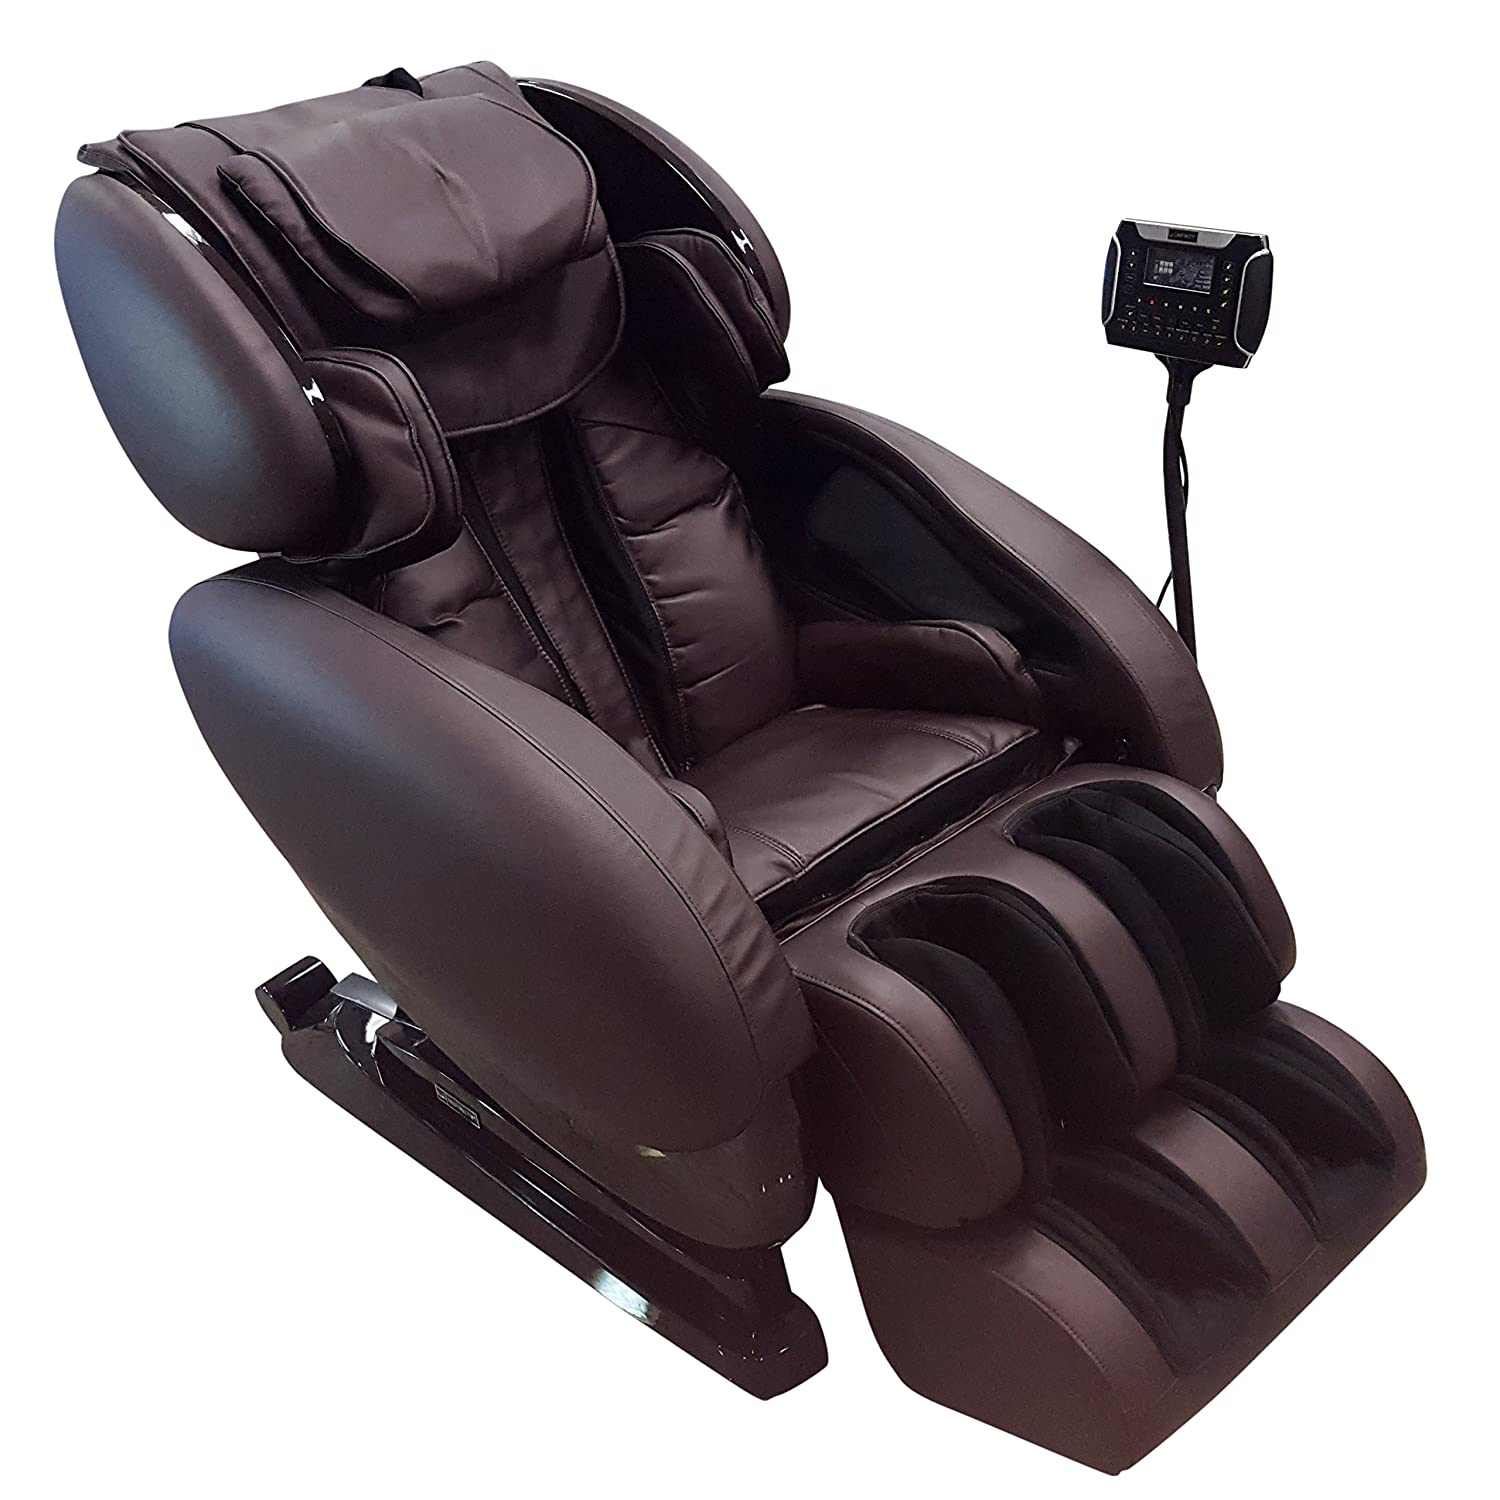 beautiful kitchen massage chair black amazon it evoke cb dining lovely of infinity